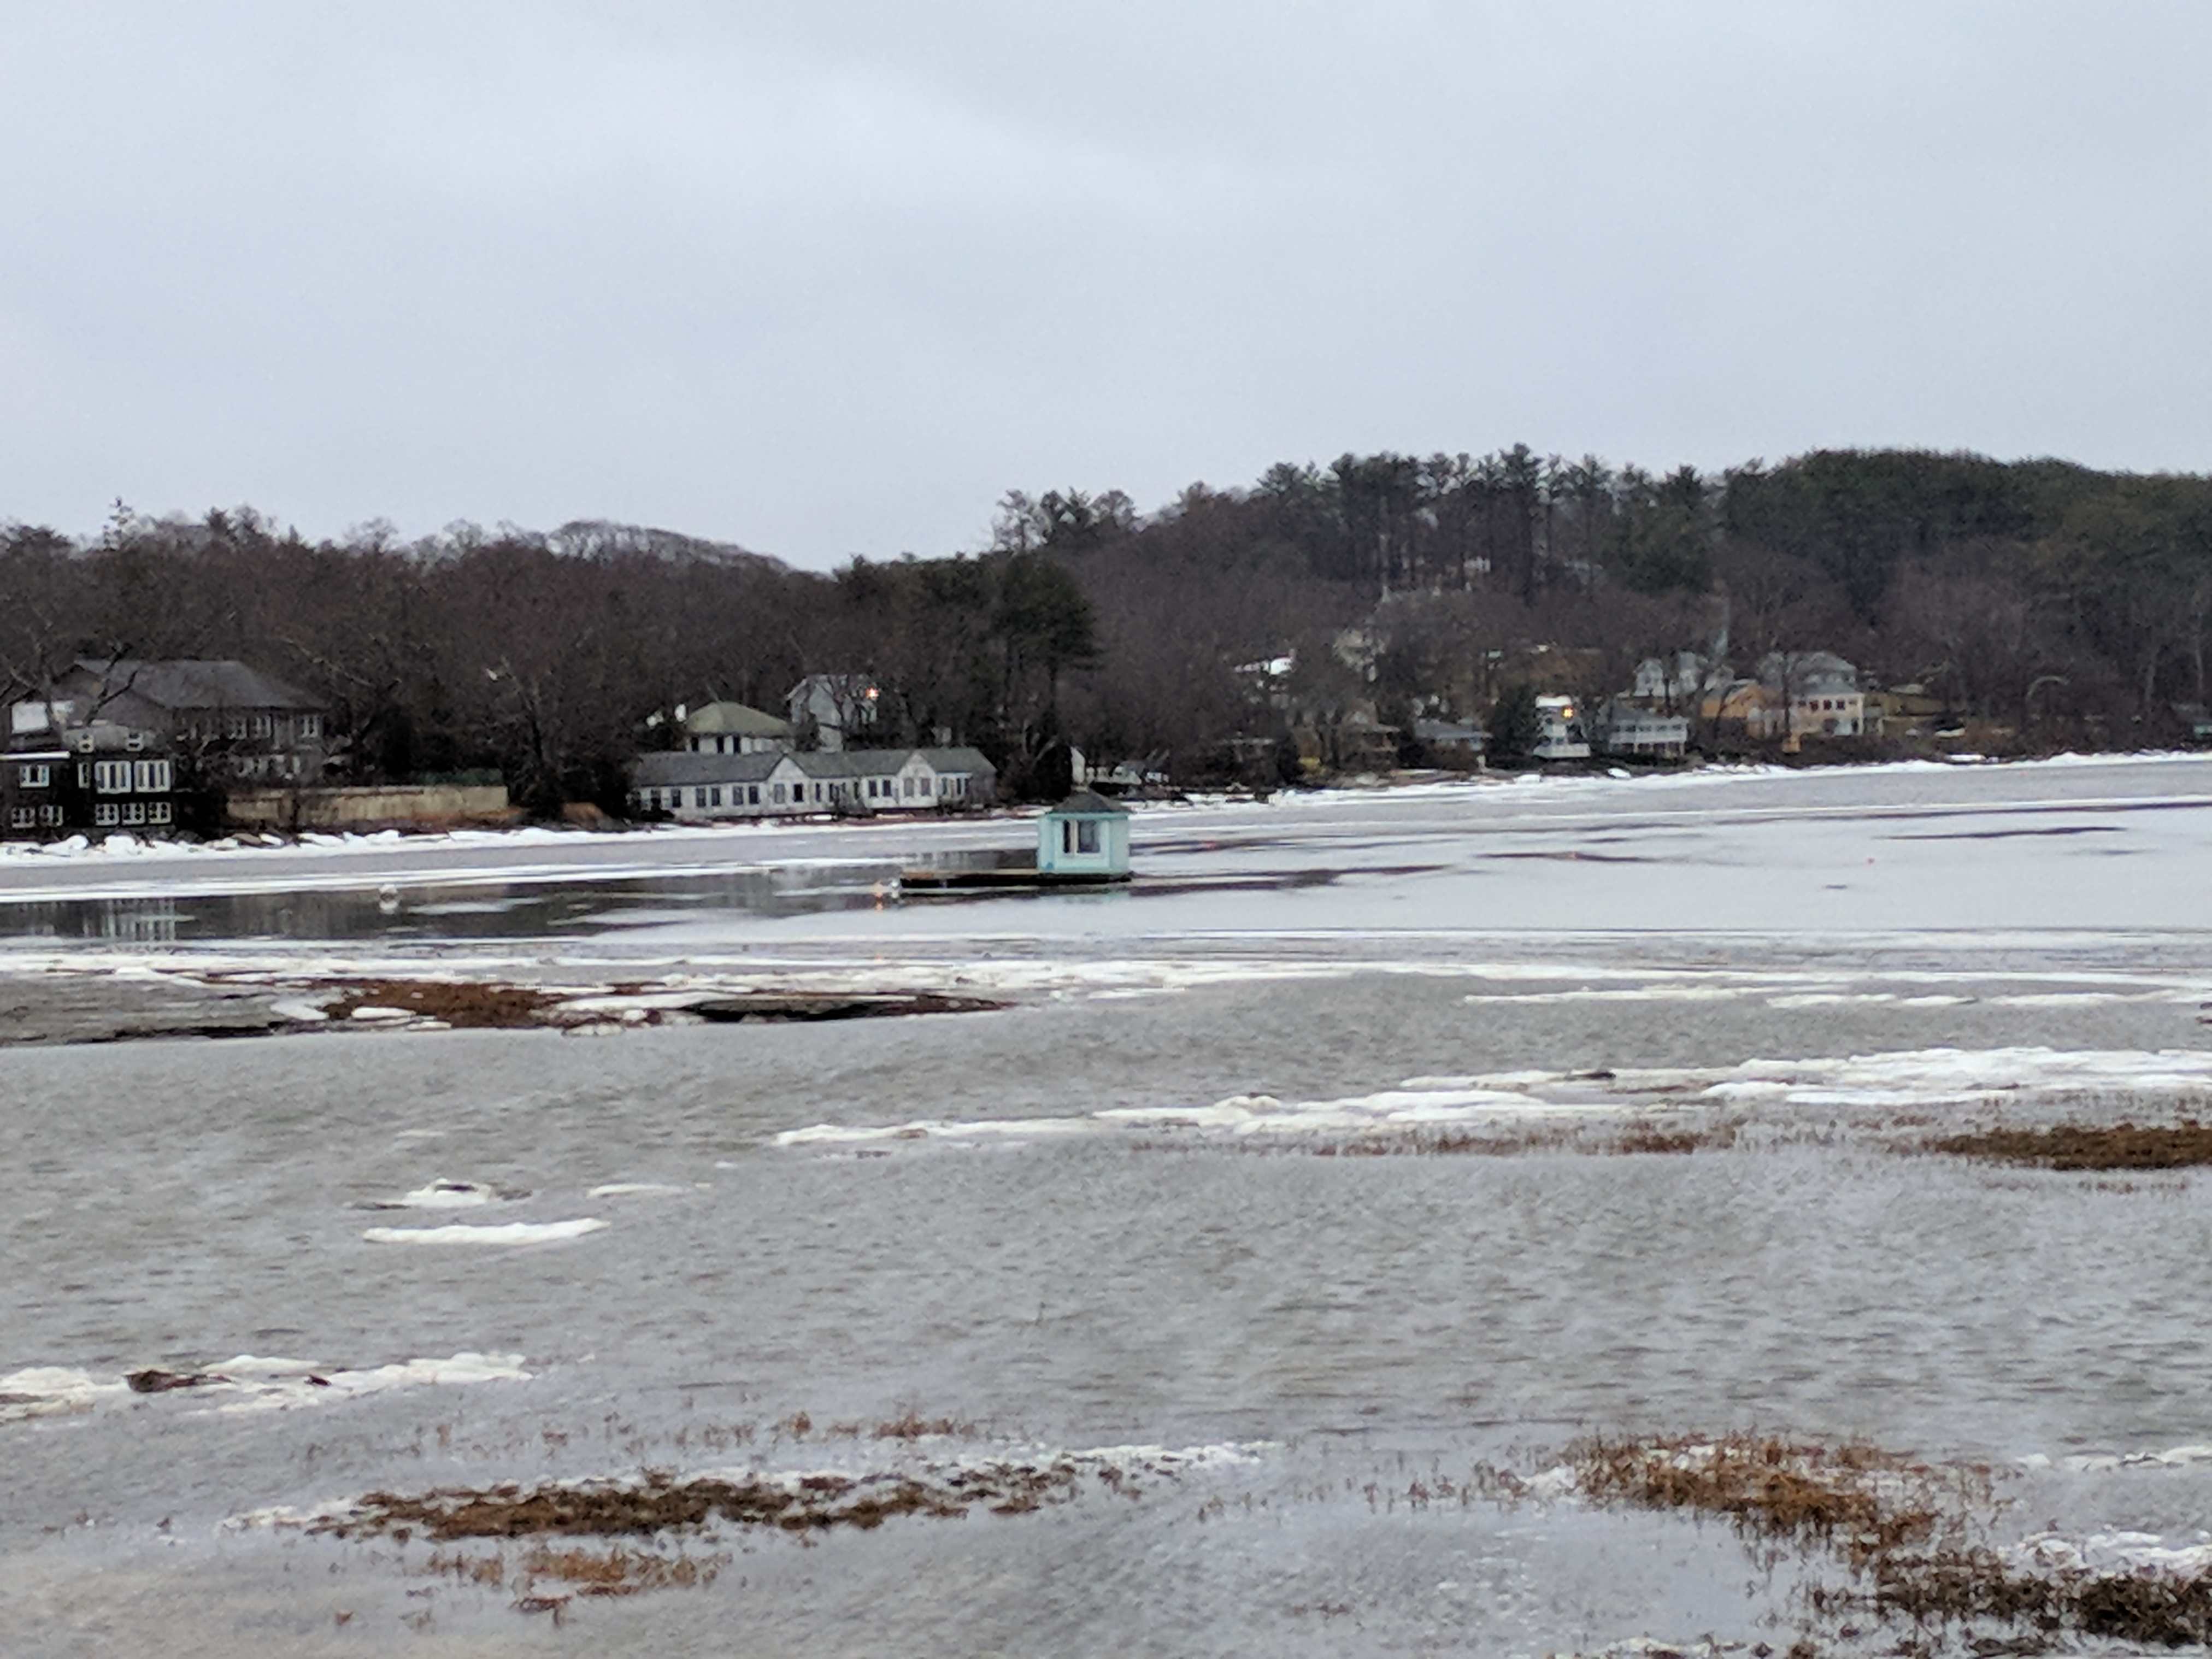 Little house boat in the great salt marsh - Gloucester MA January 13 2018 after thaw from historic winter storm © c ryan__072700.jpg